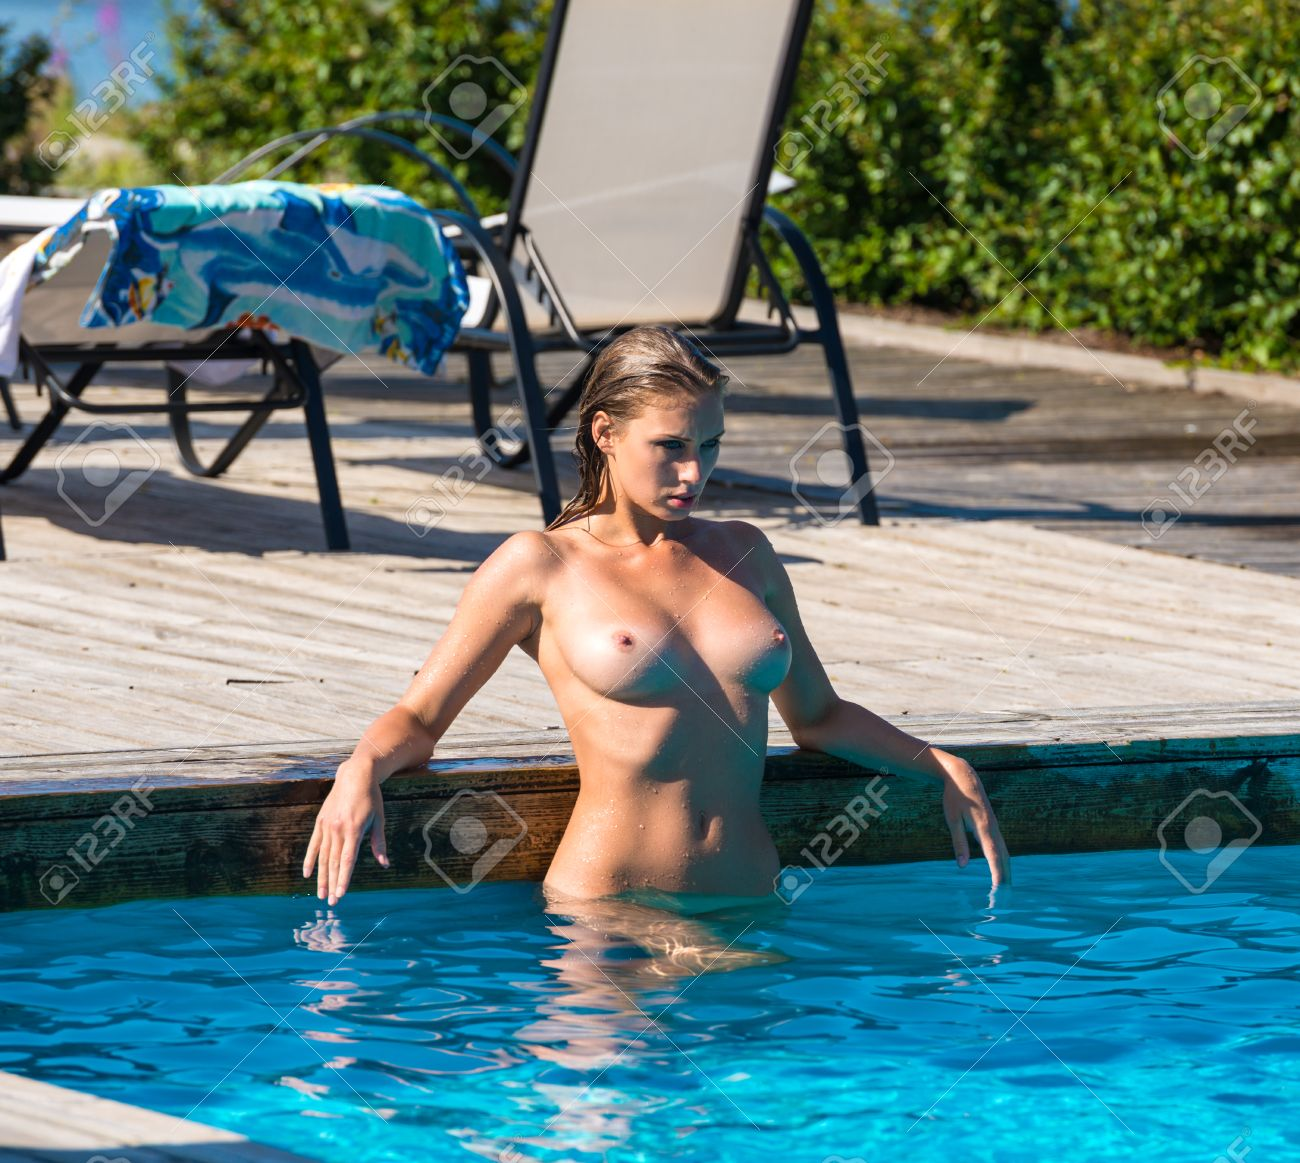 Women Naked In Swimming Pool